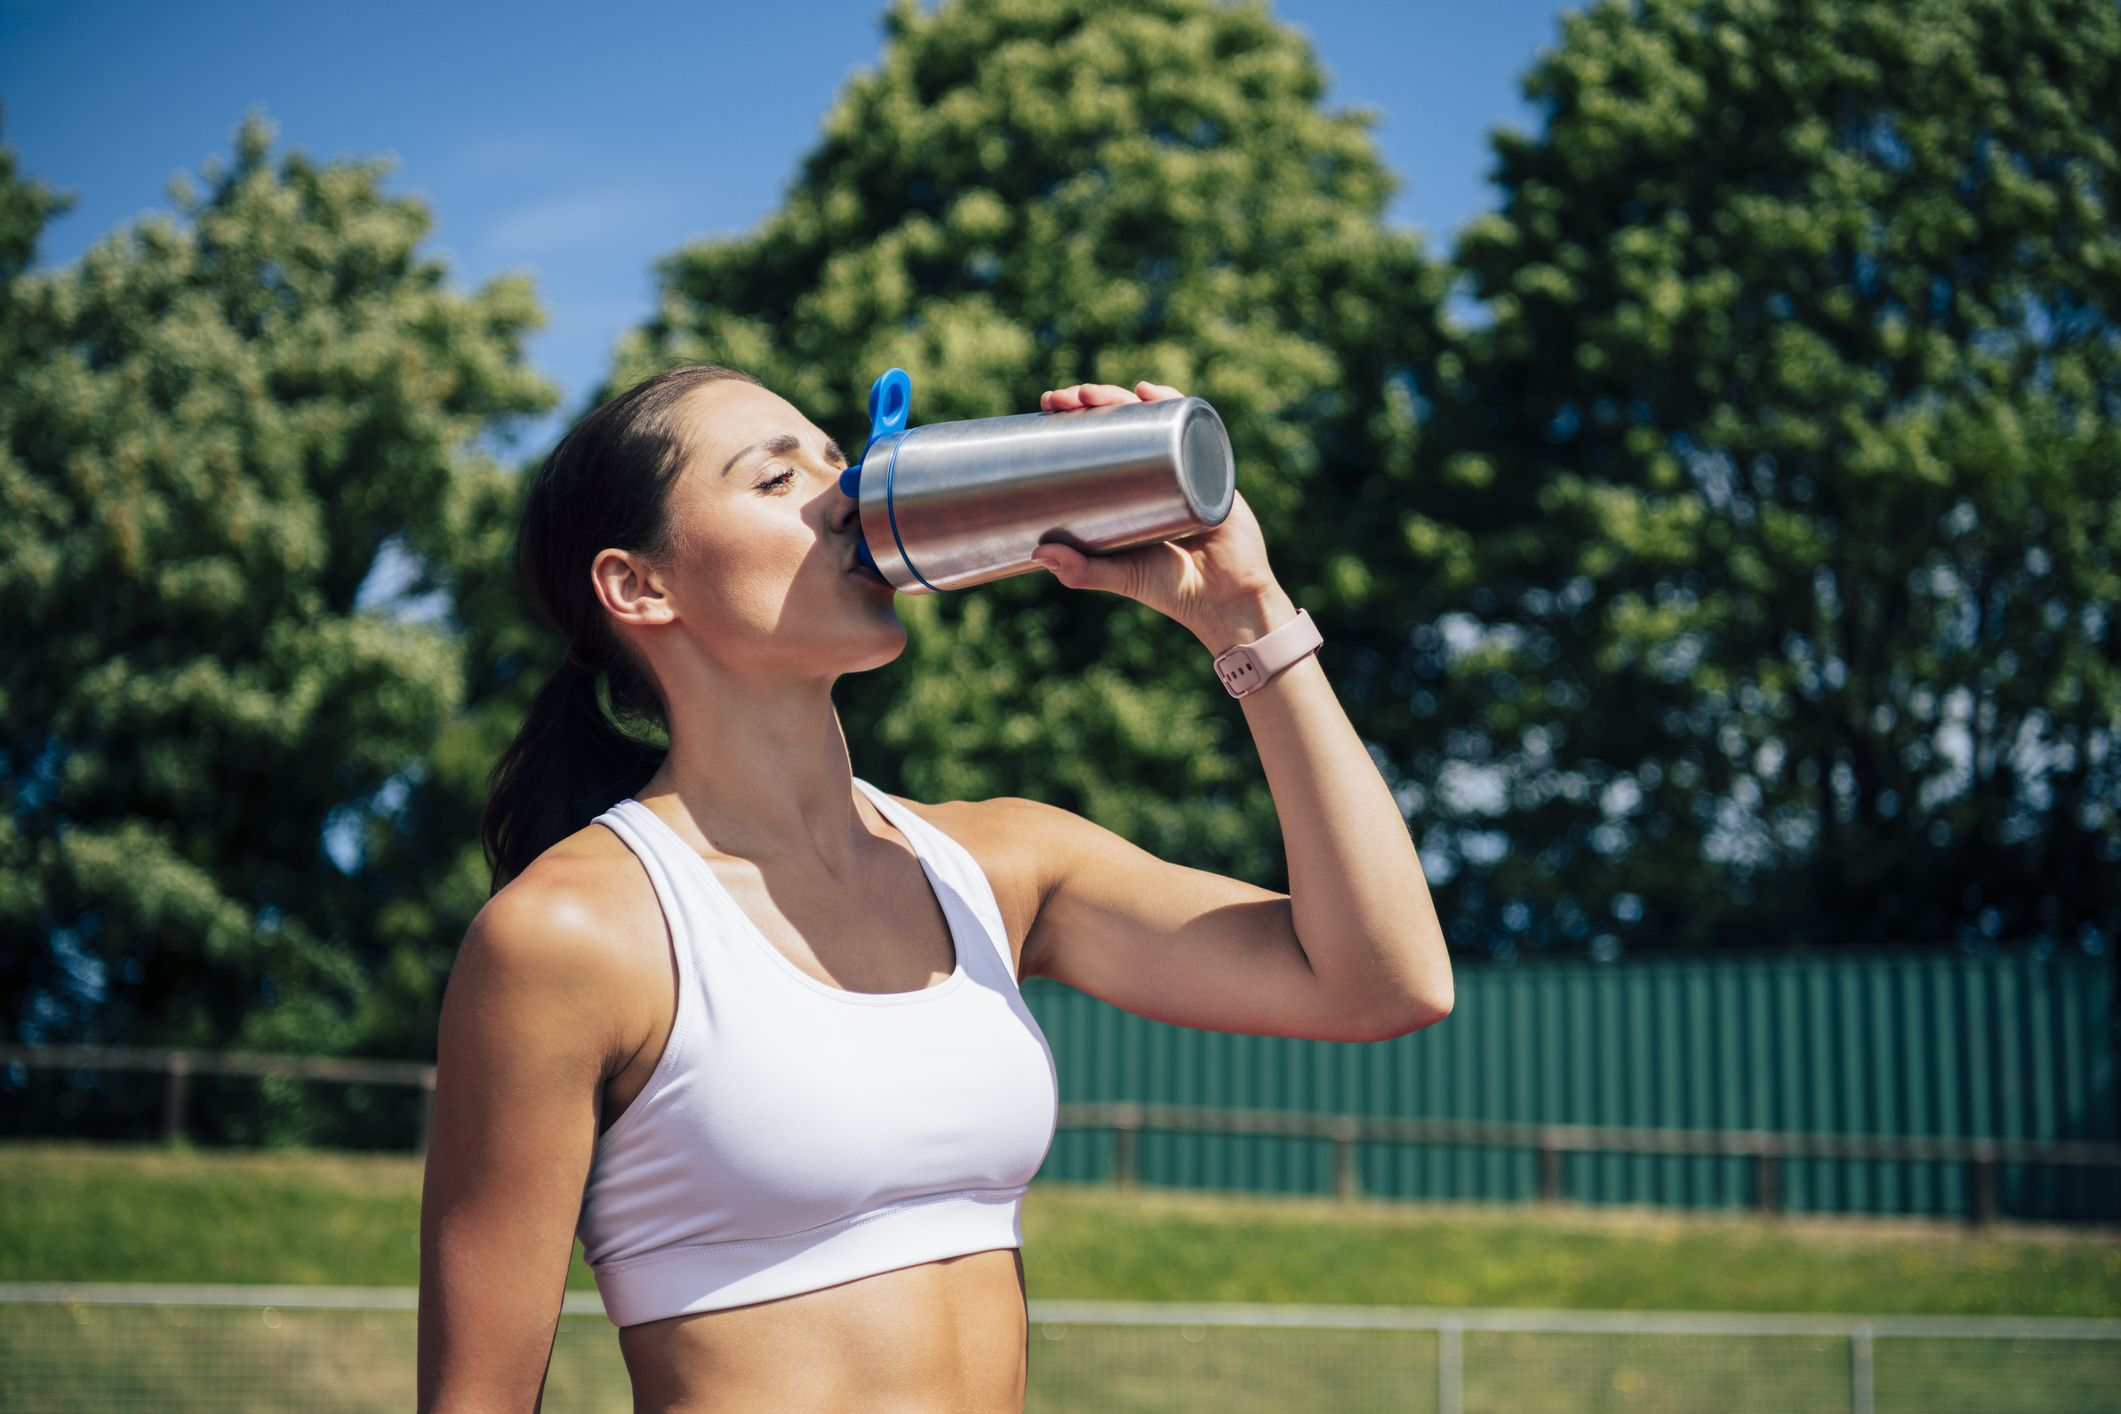 Your Complete Guide to Pre-workout Supplements: Why, When & What to Buy